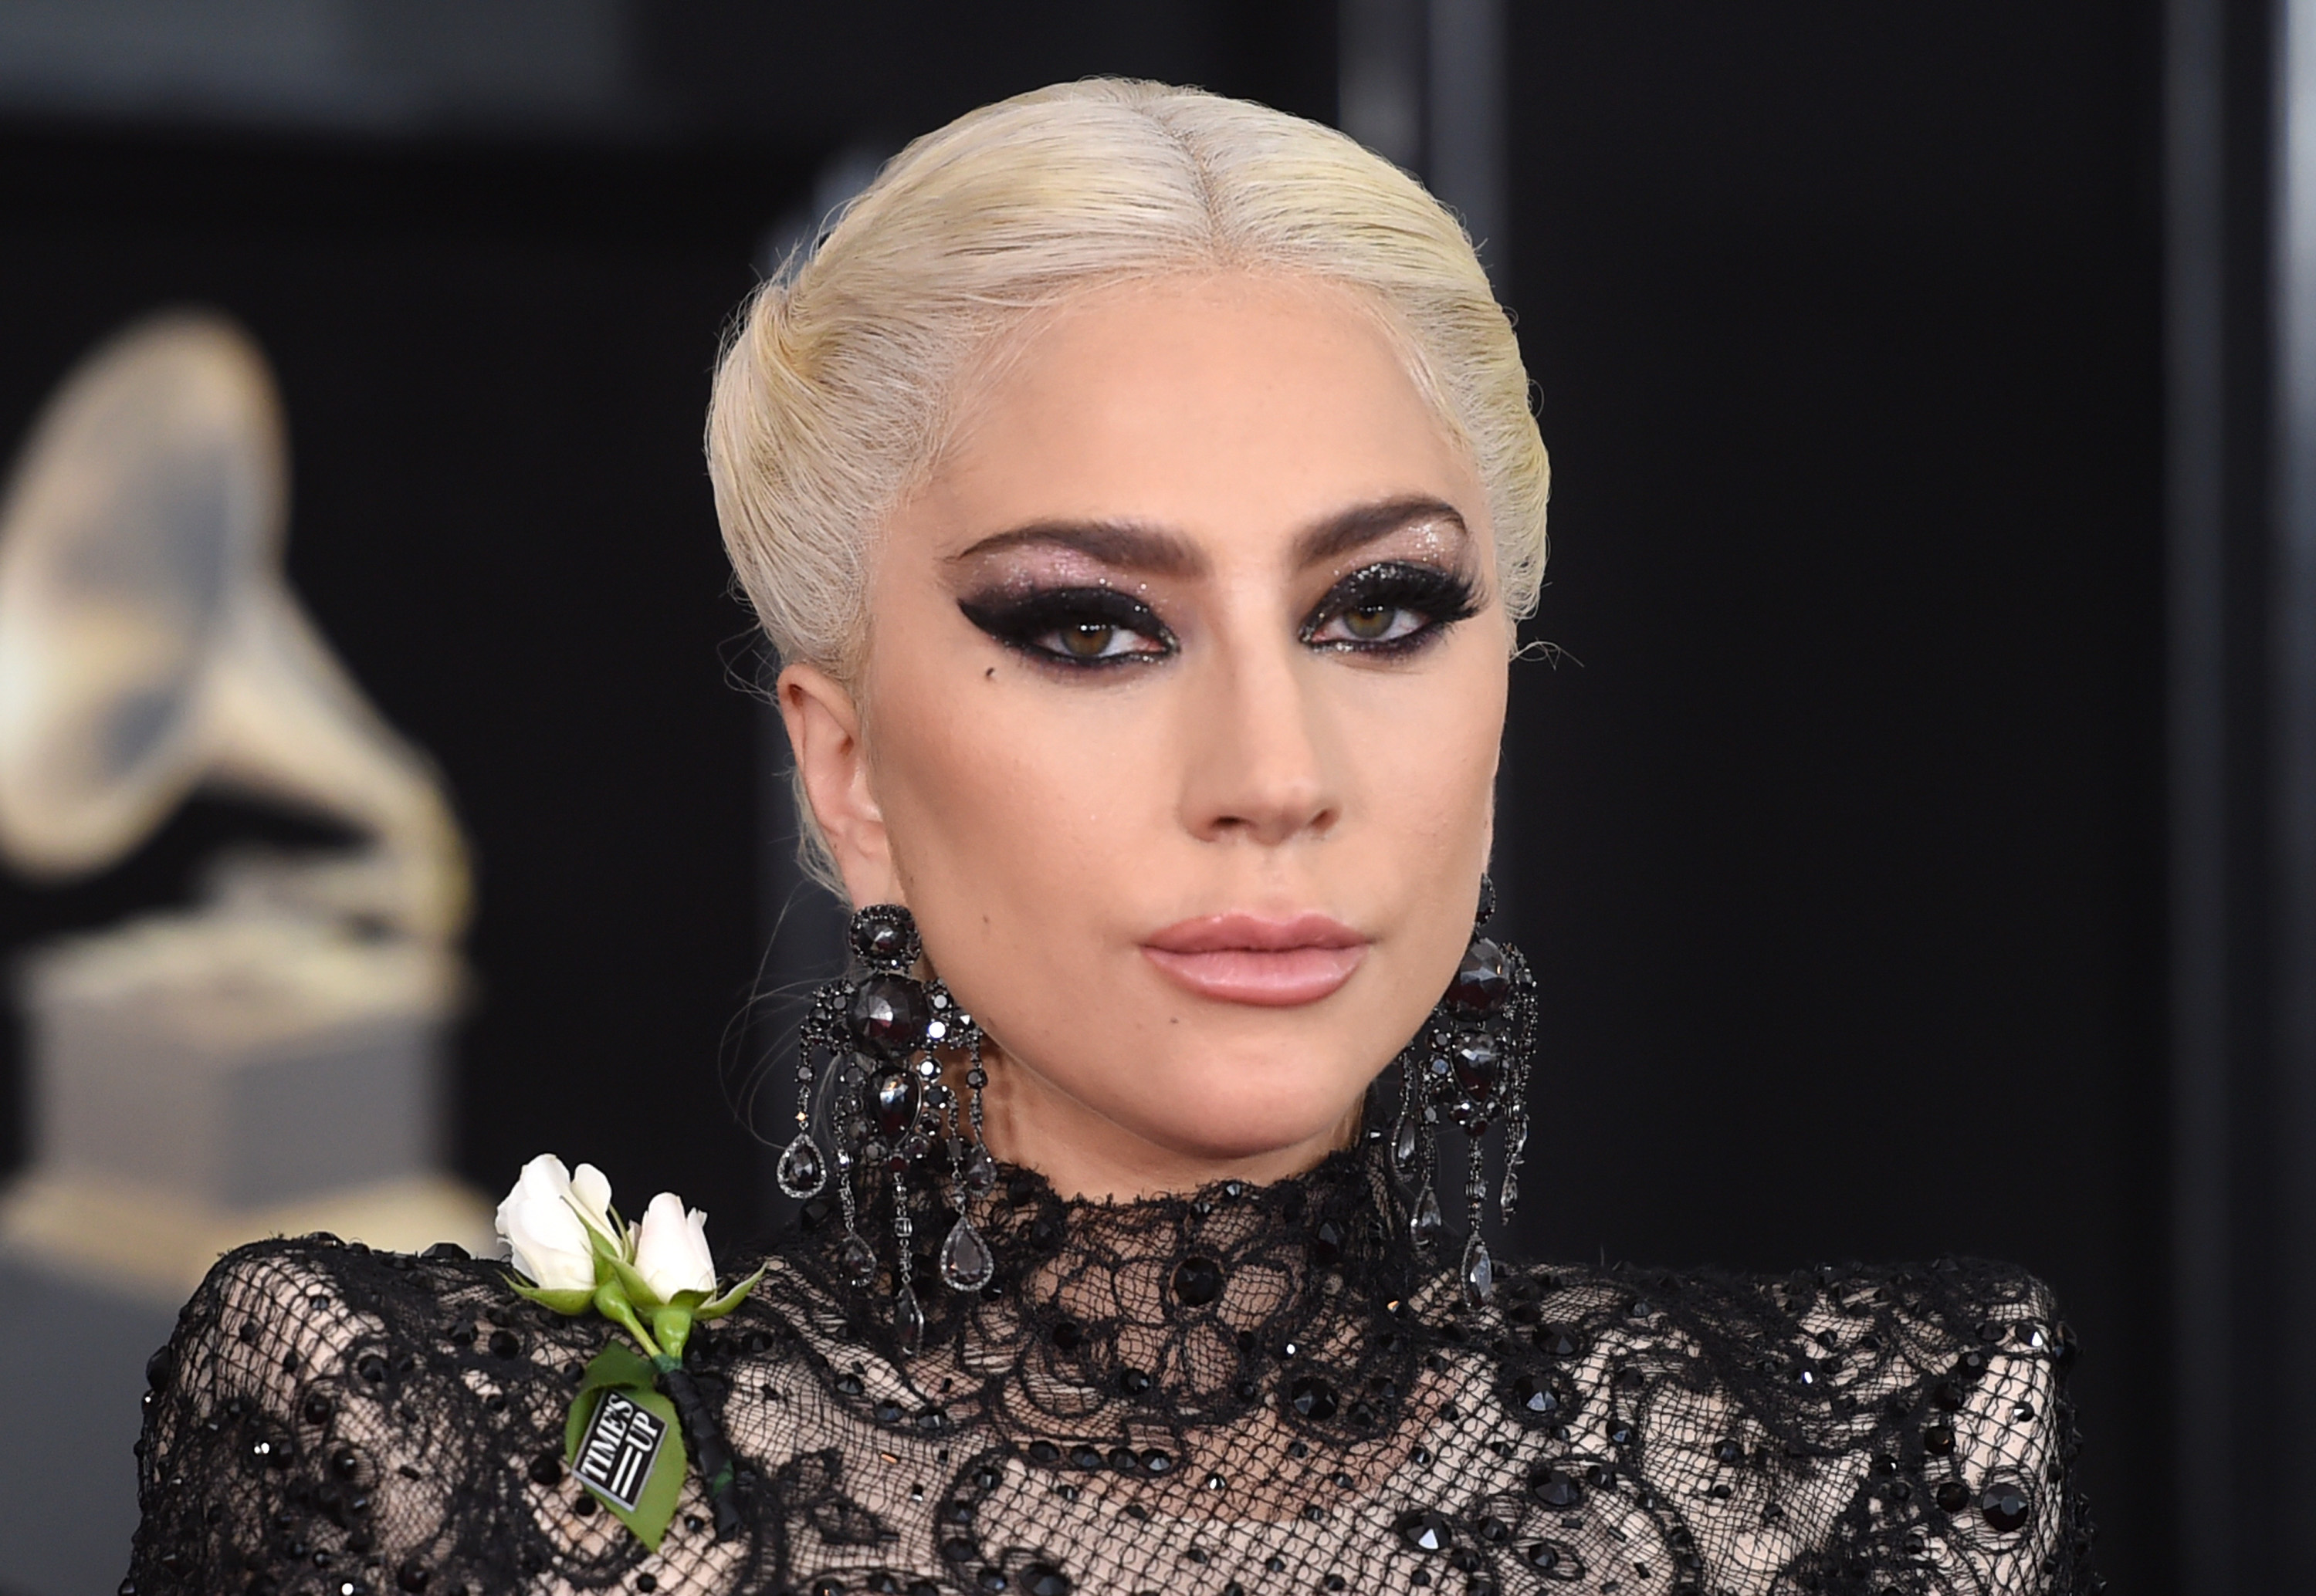 Lady-Gaga-Wows-In-Black-Lace-Ball-Gown-Bodysuit-Combo-At-2018-Grammy-Awards